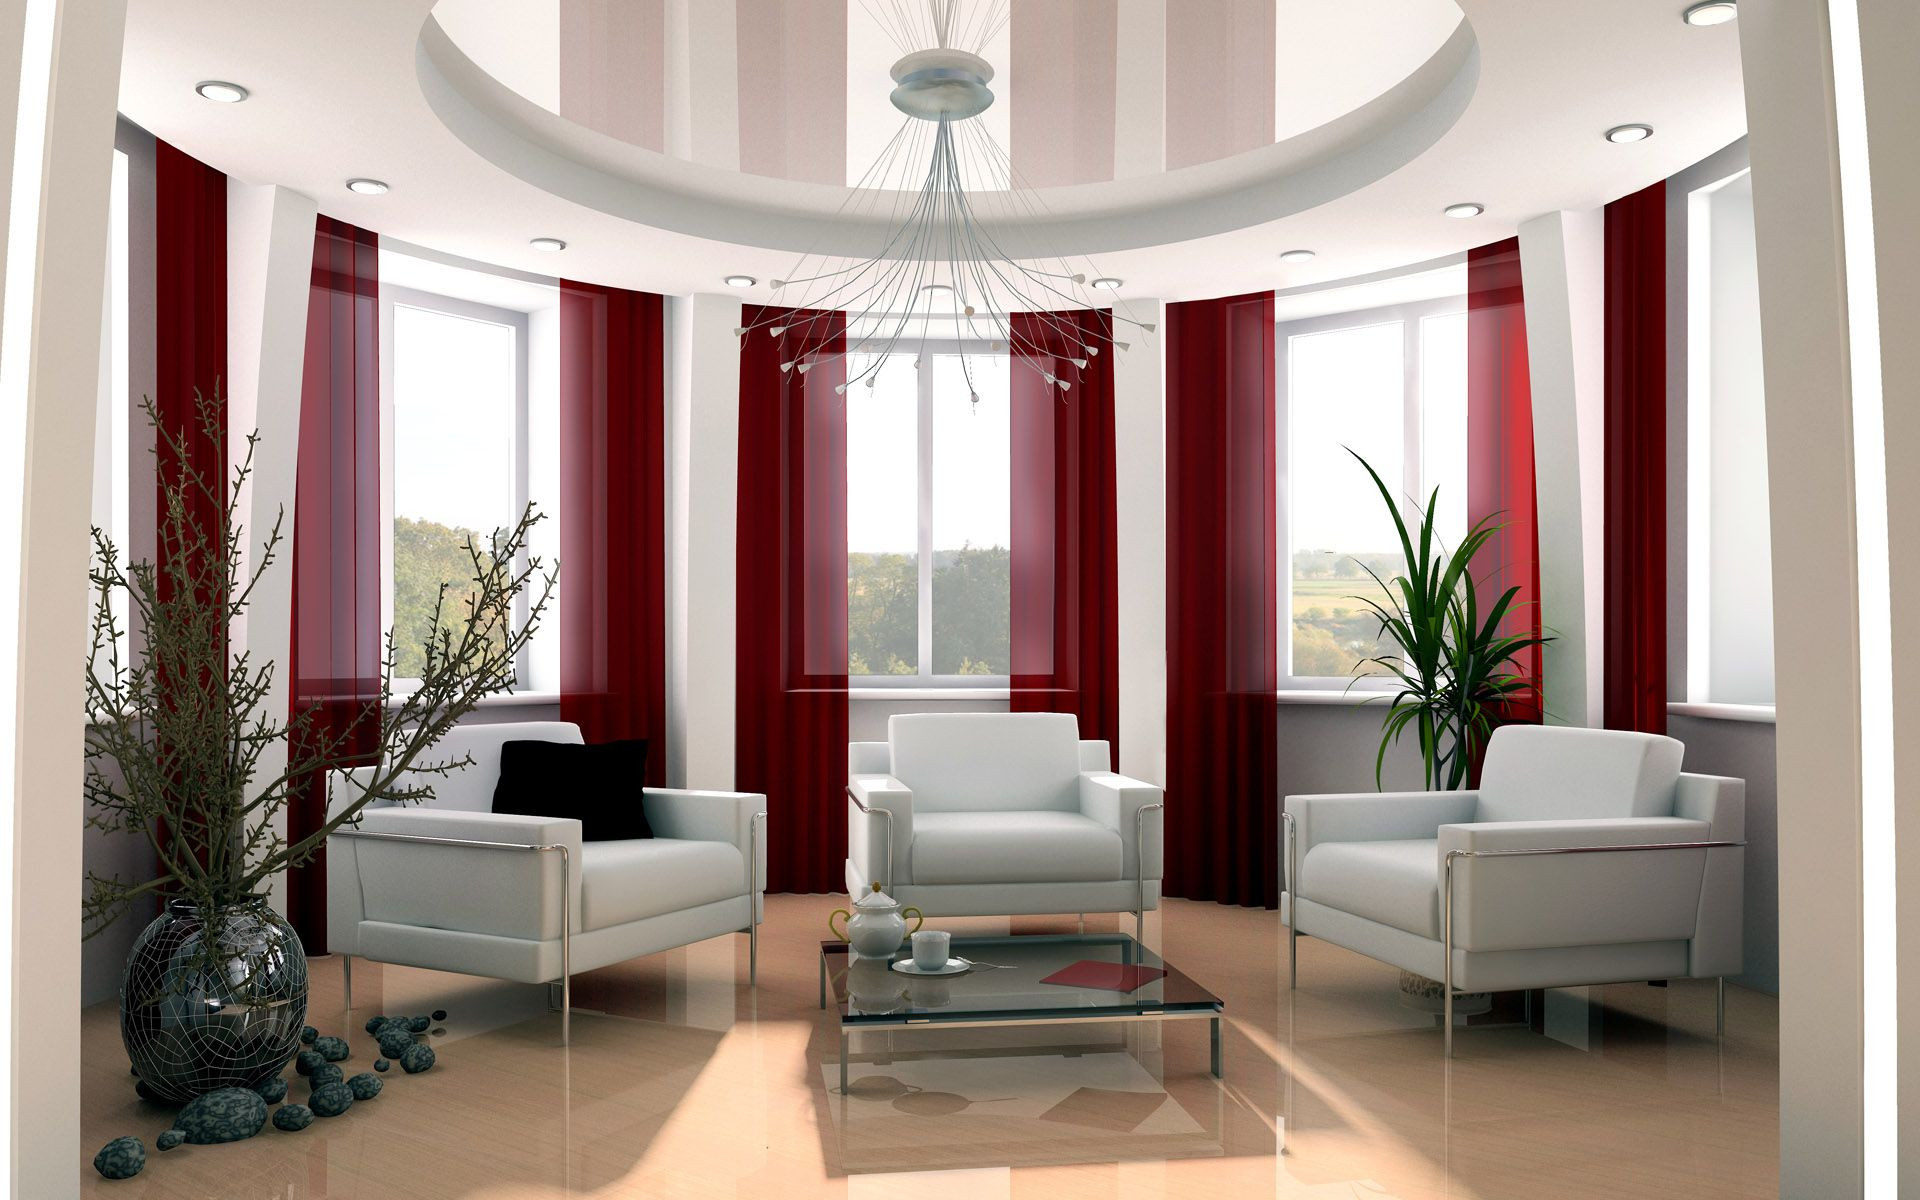 Modern Homes Best Interior Designs By Living Room Design 2012 On Home Ideas With HD Resolution Pixels Is Fresh